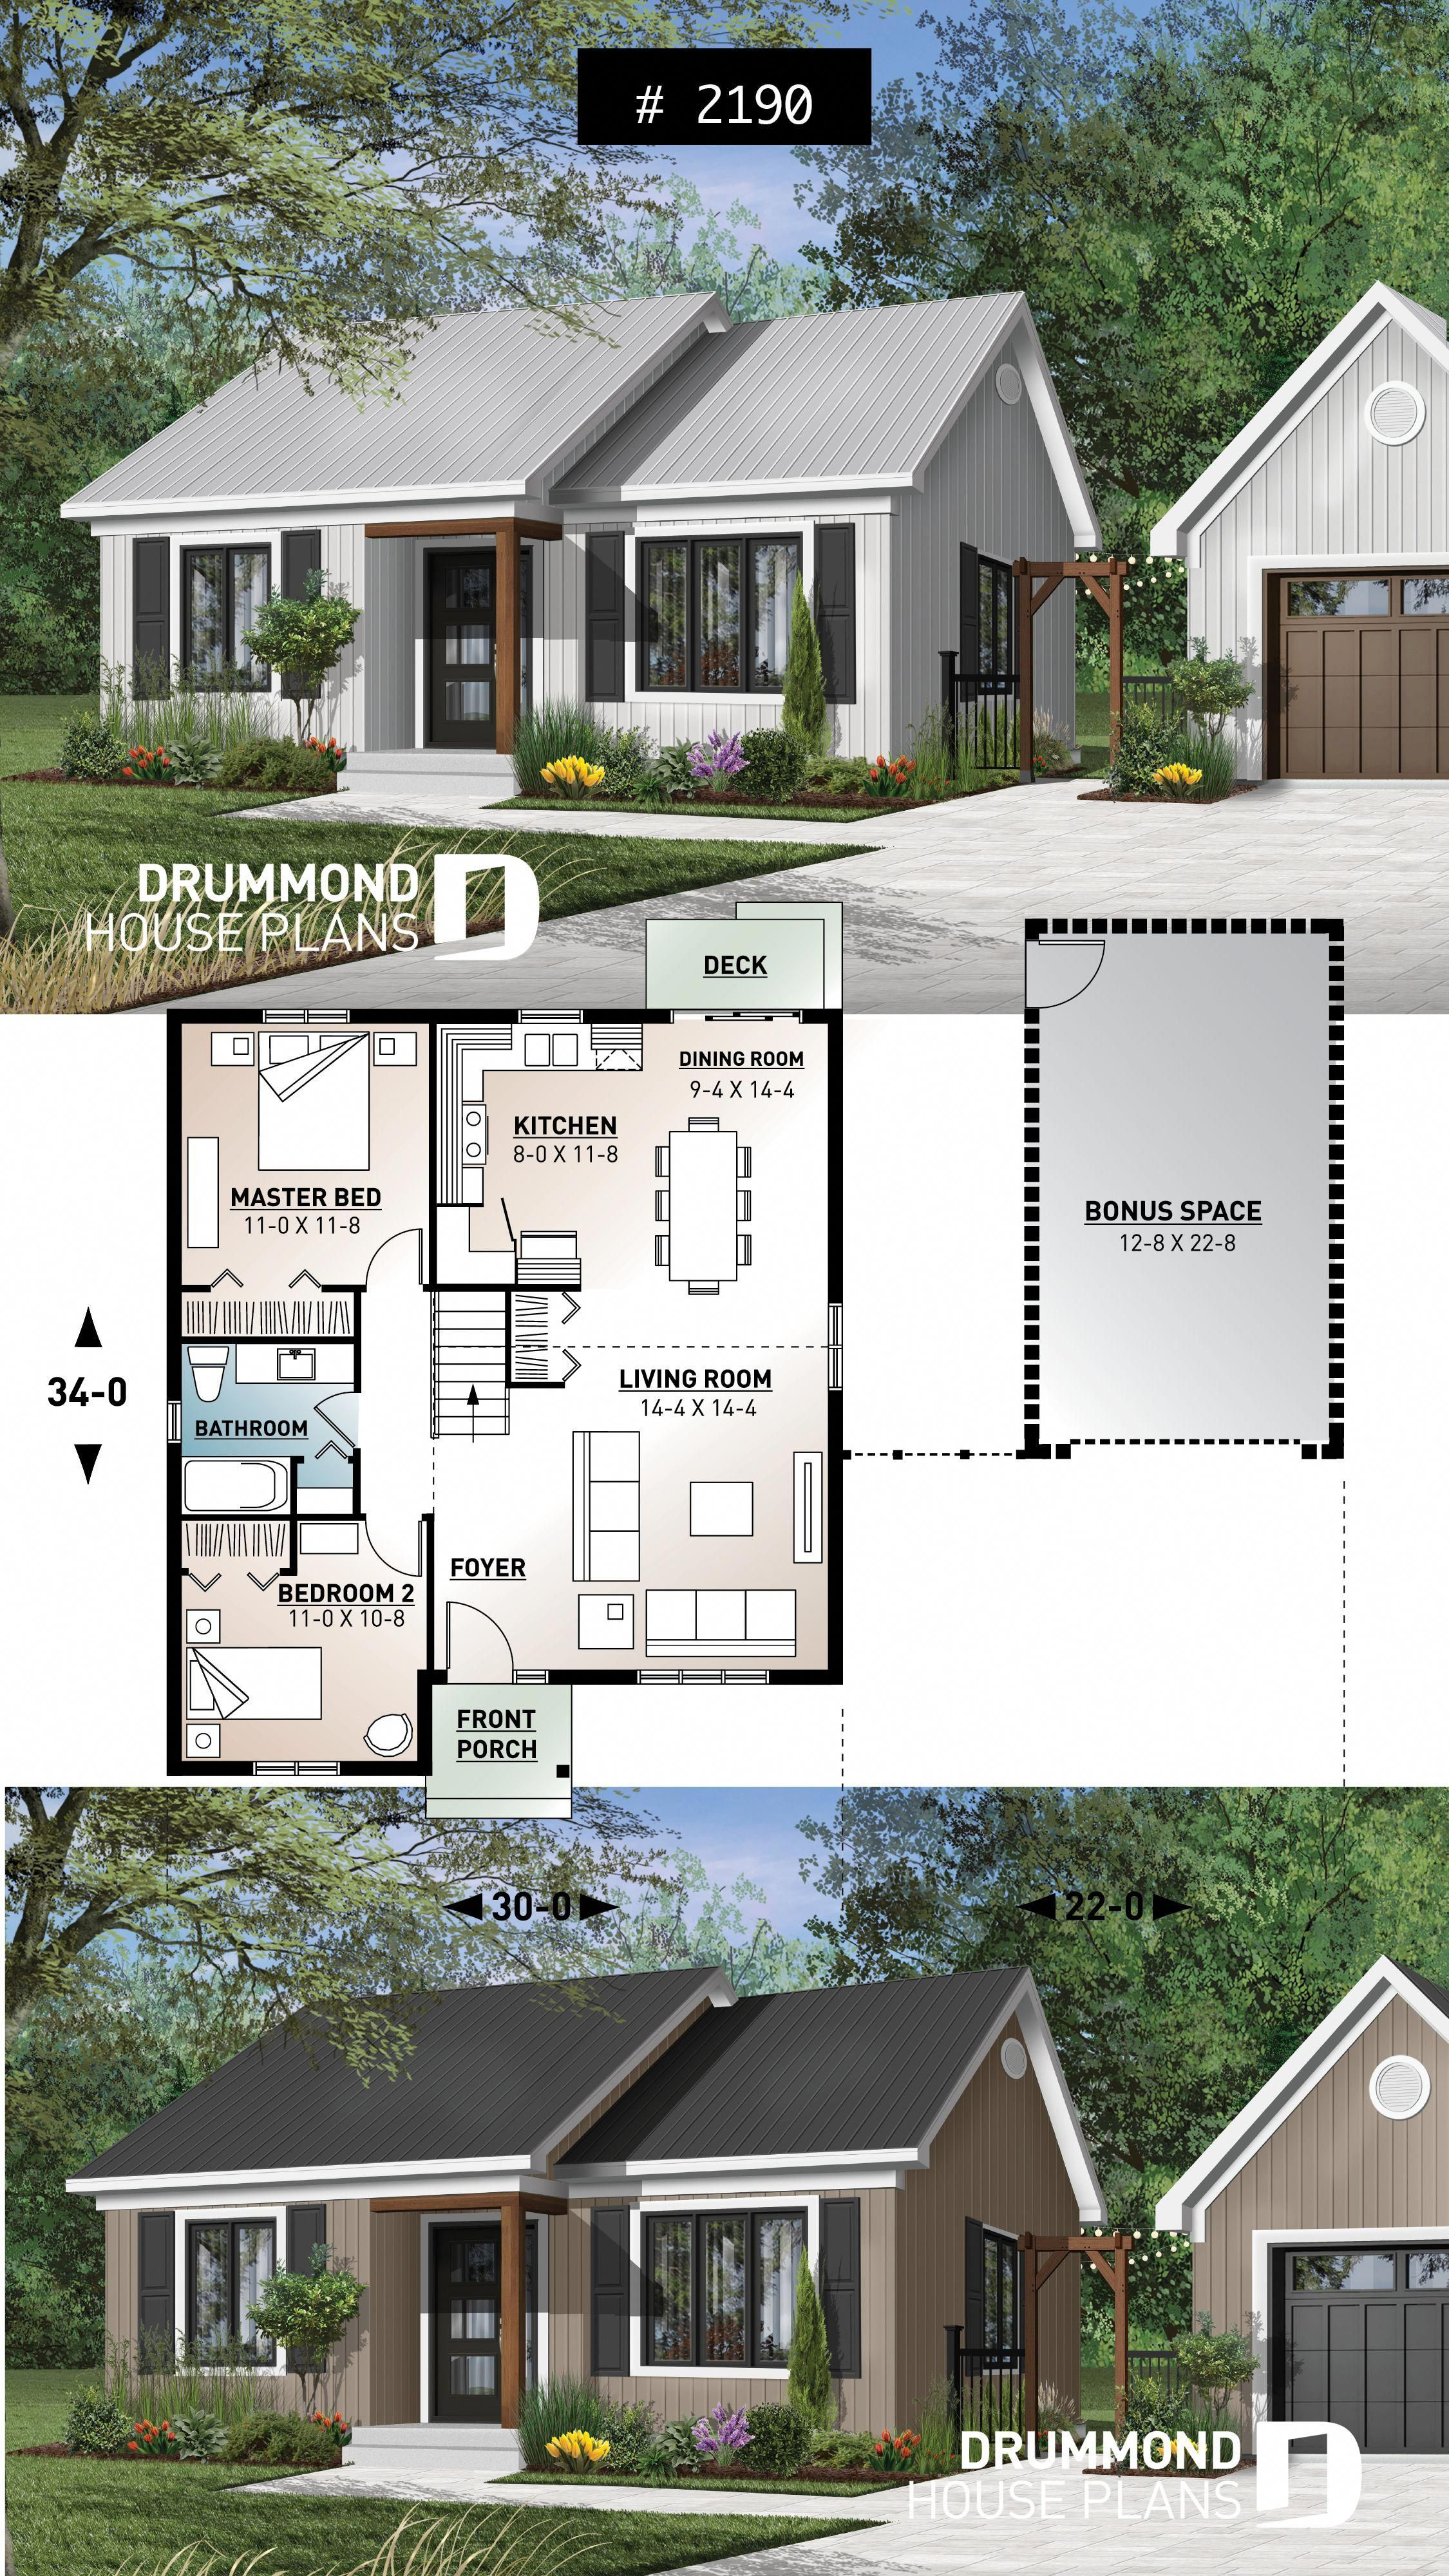 Check Out The Link To Read More About Small Spaces Decorating Diy Click The Link To Read More Smallhousede Drummond House Plans House Plans Small House Plans